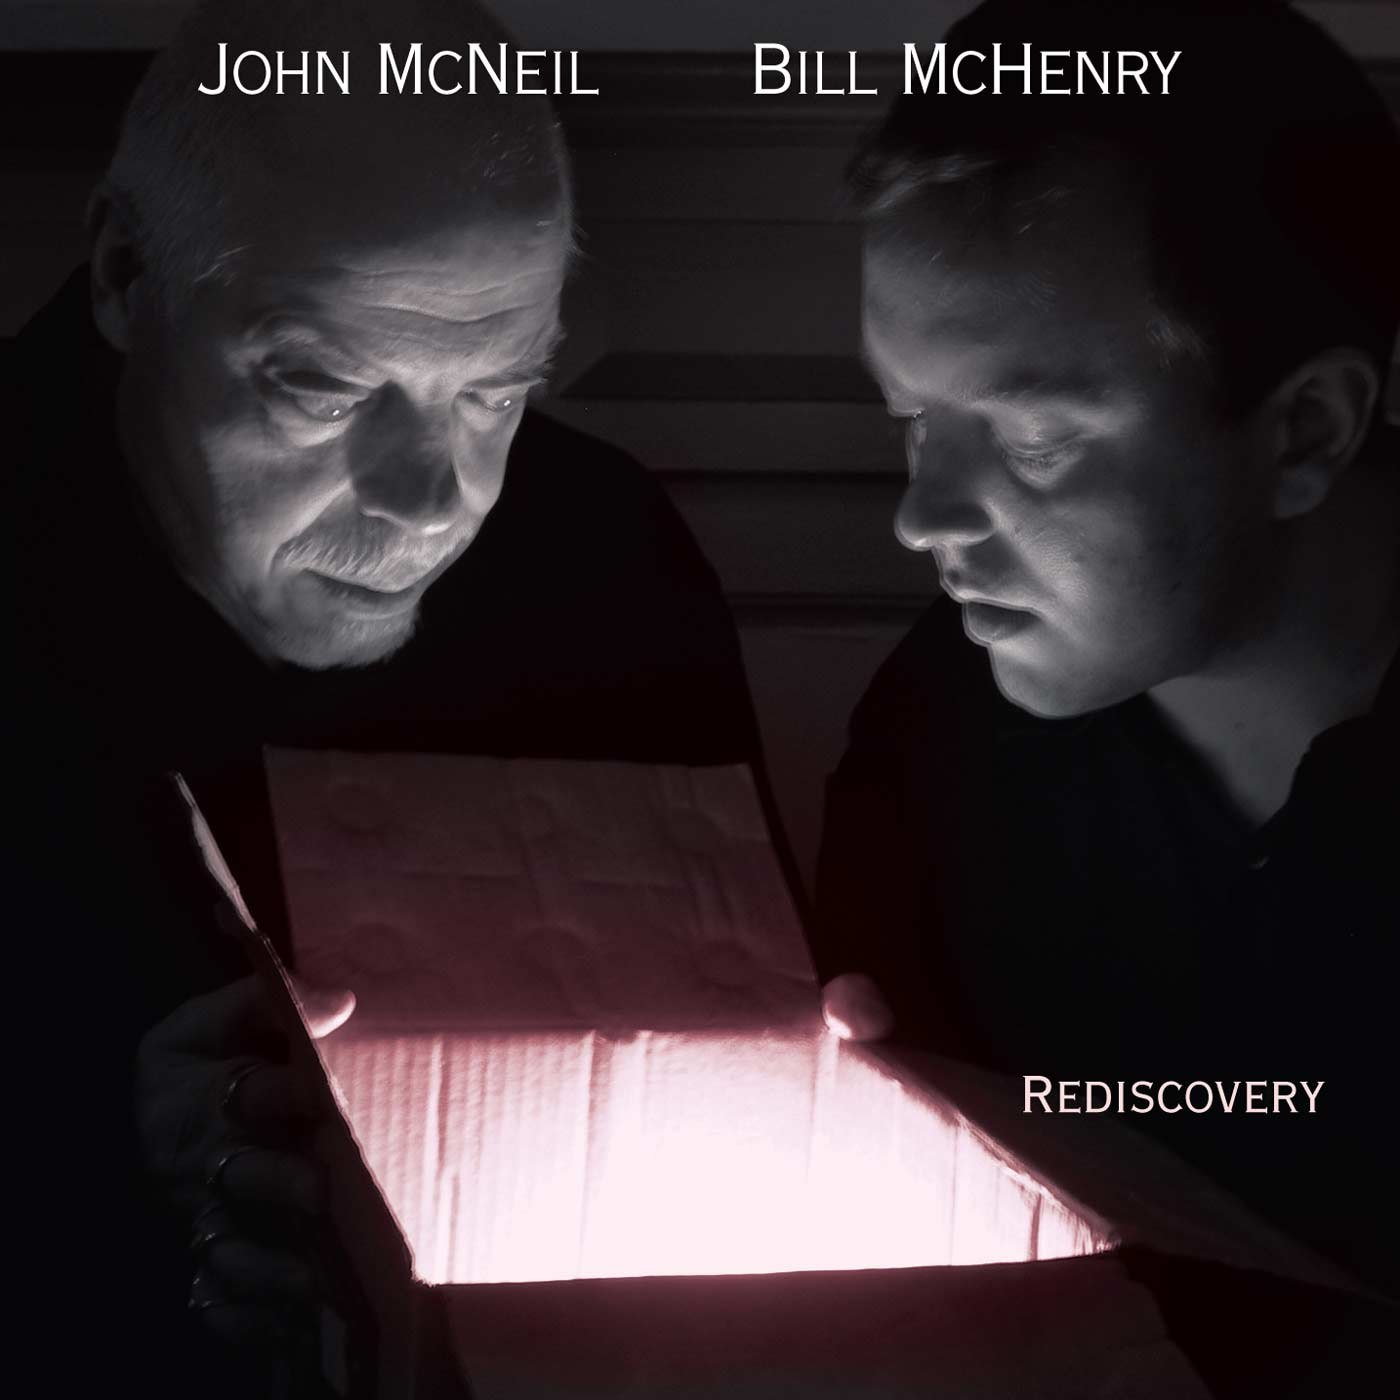 Rediscovery By Bill McHenry and John McNeil